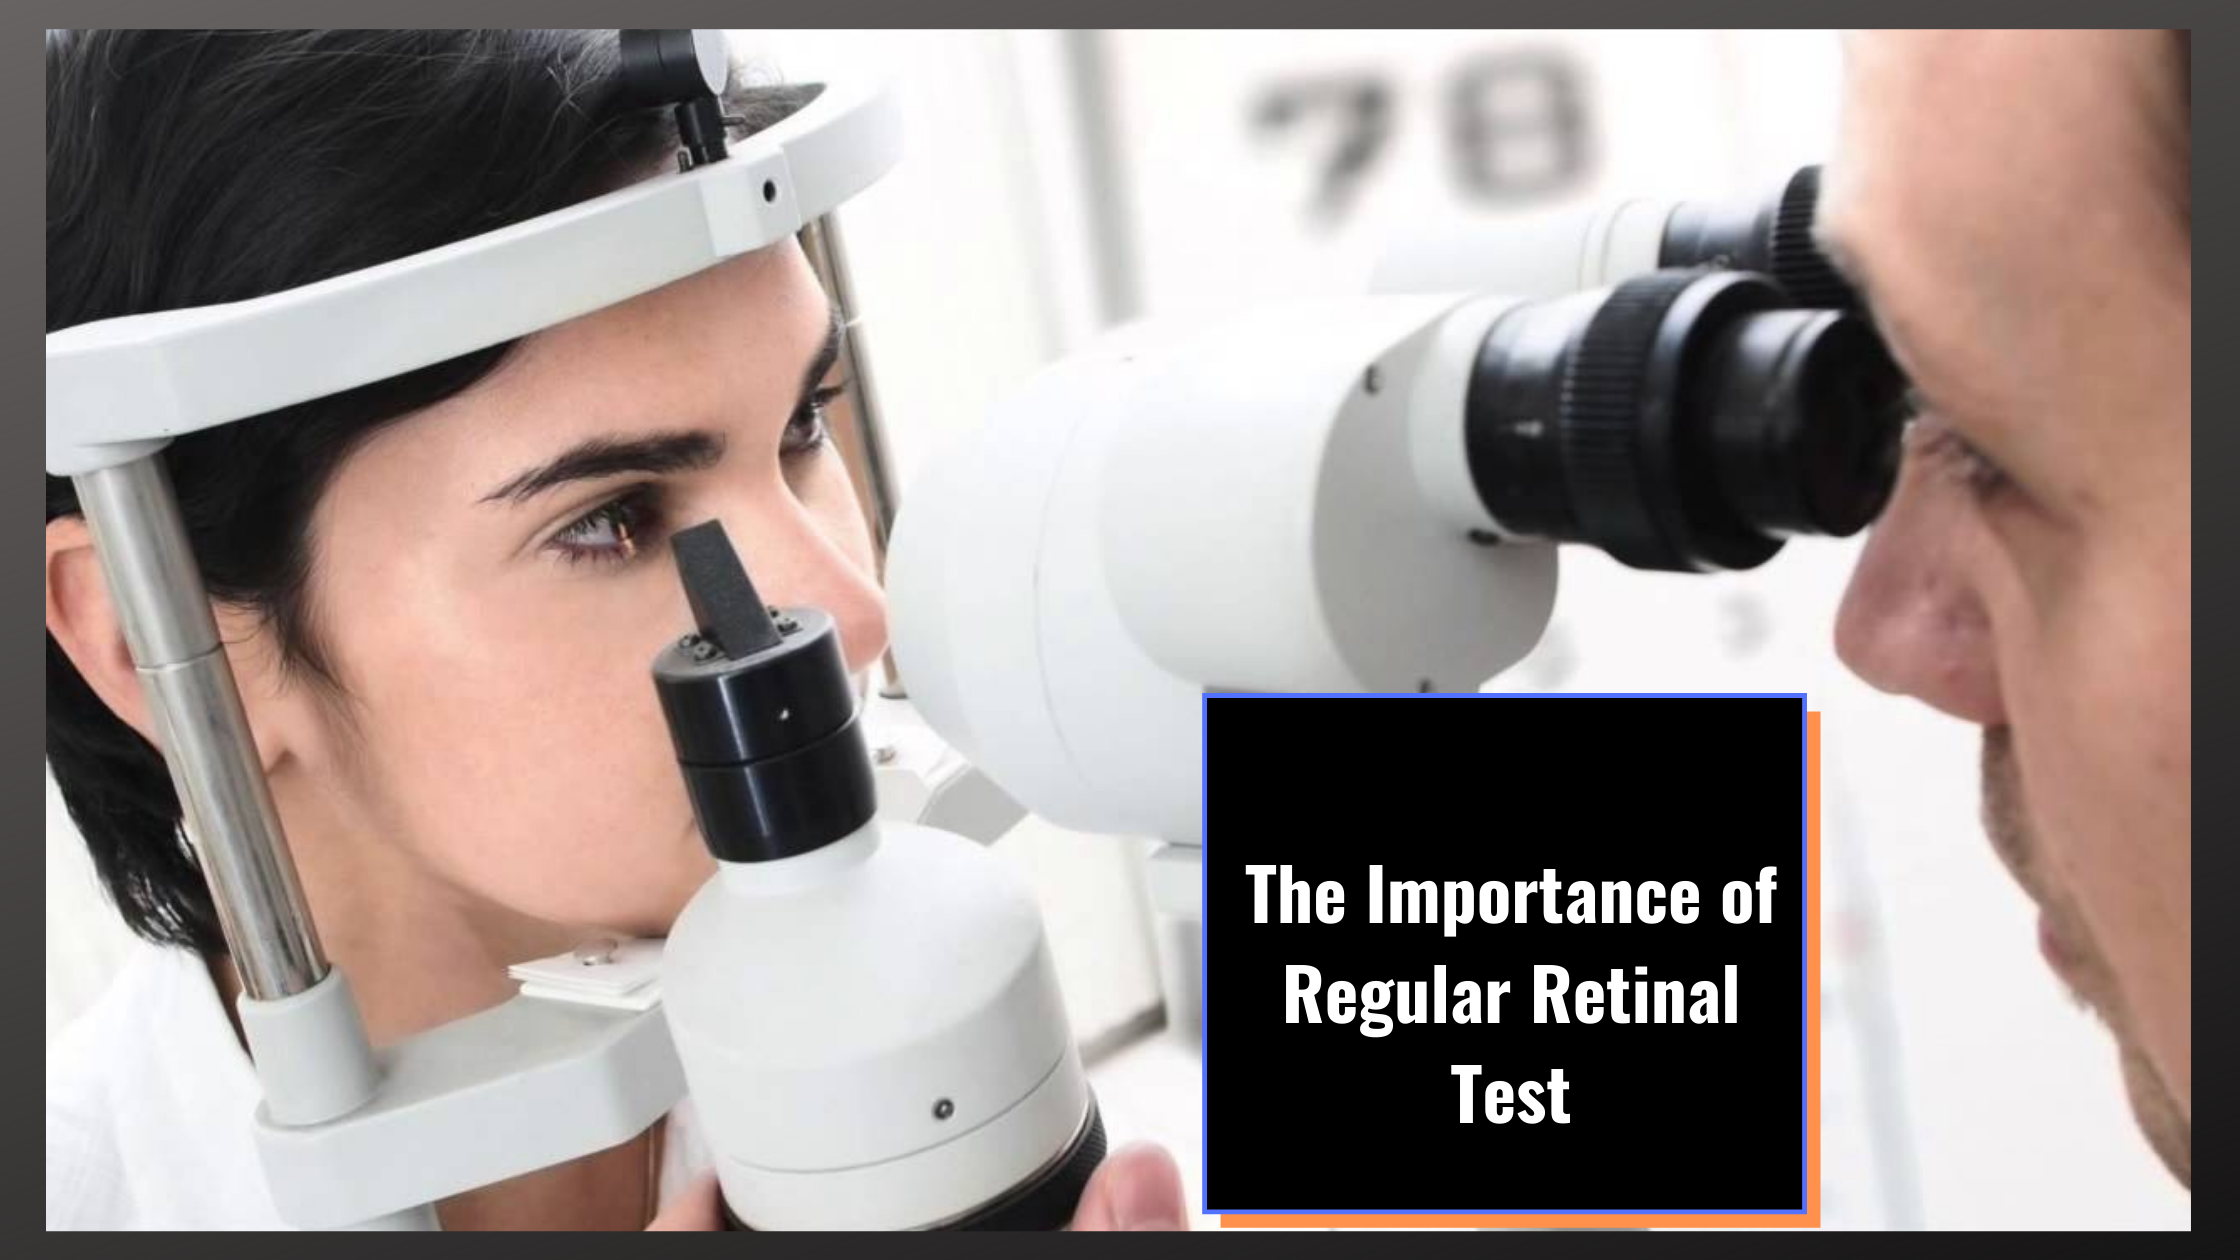 The Importance of Regular Retinal Test